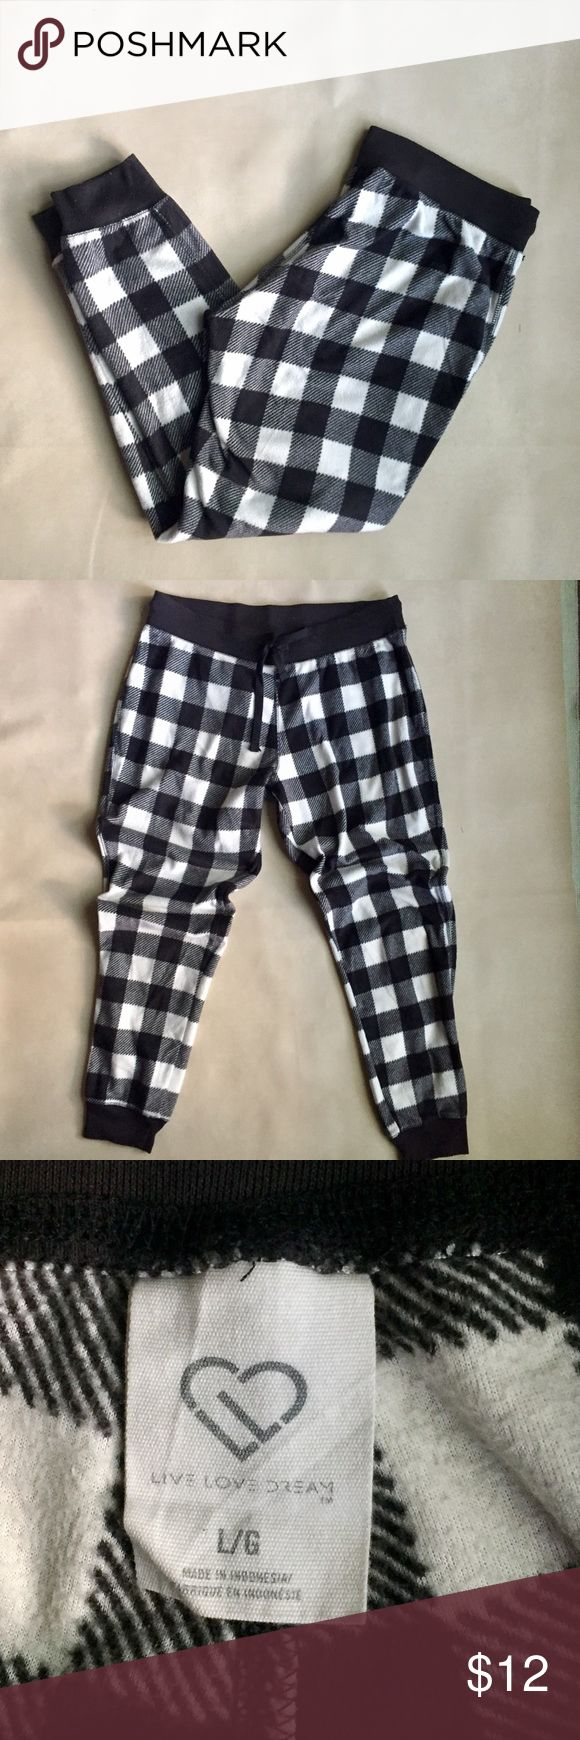 AEROPOSTLE Black & White Window Pane Skinny Sweats Partially leggings but with a looser fit so more of a skinny with fitted ankle sweat pants. Sooo comfy and very cute. You can wear them out and about and no one will accuse you of wearing PJs. SIZE LARGE BUT FITS LIKE A MEDIUM Aeropostale Pants Track Pants & Joggers